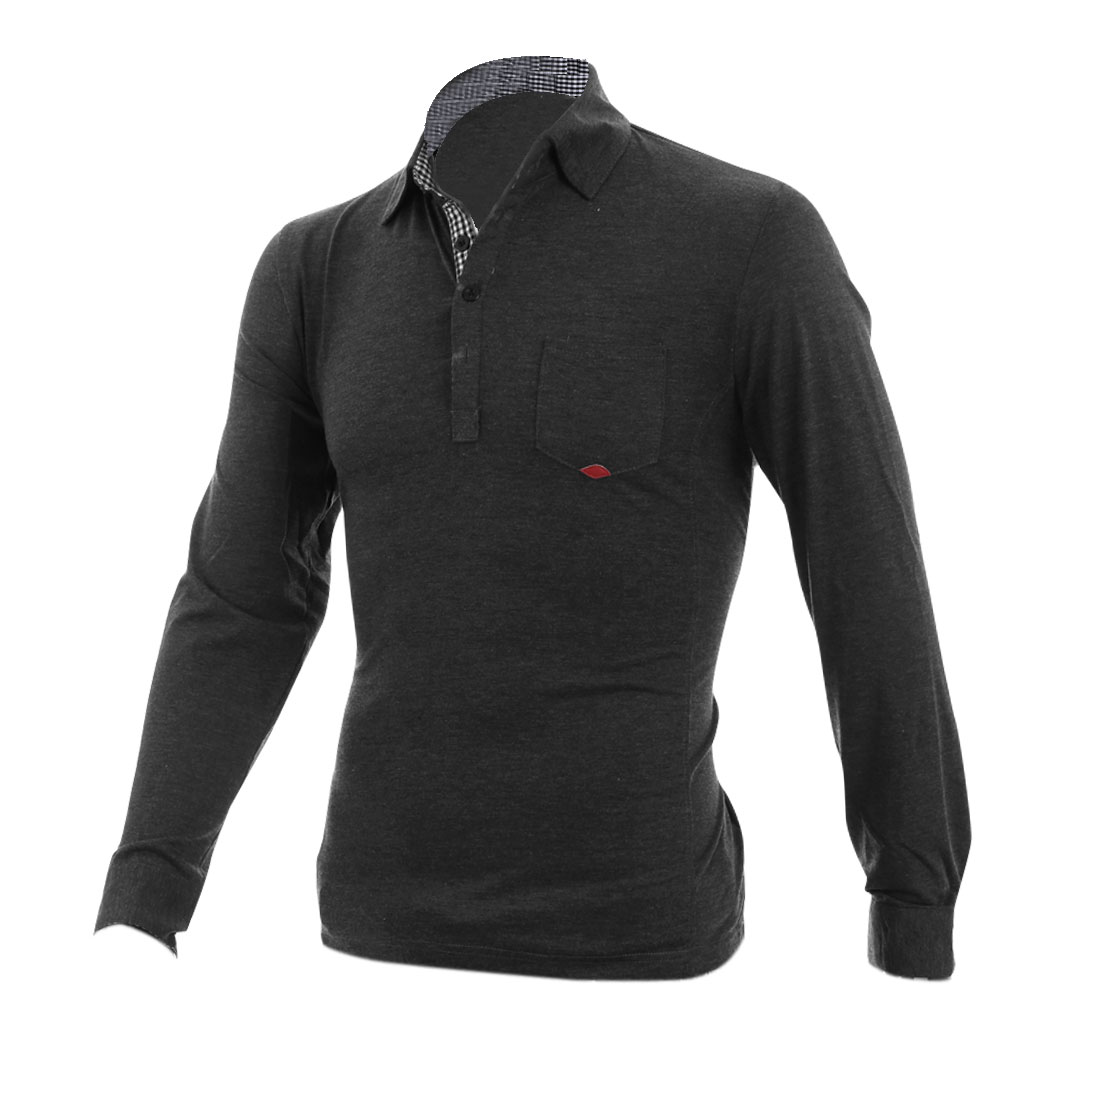 Man Stylish Button Front Plaids Detail Dark Gray Casual Polo Shirt M